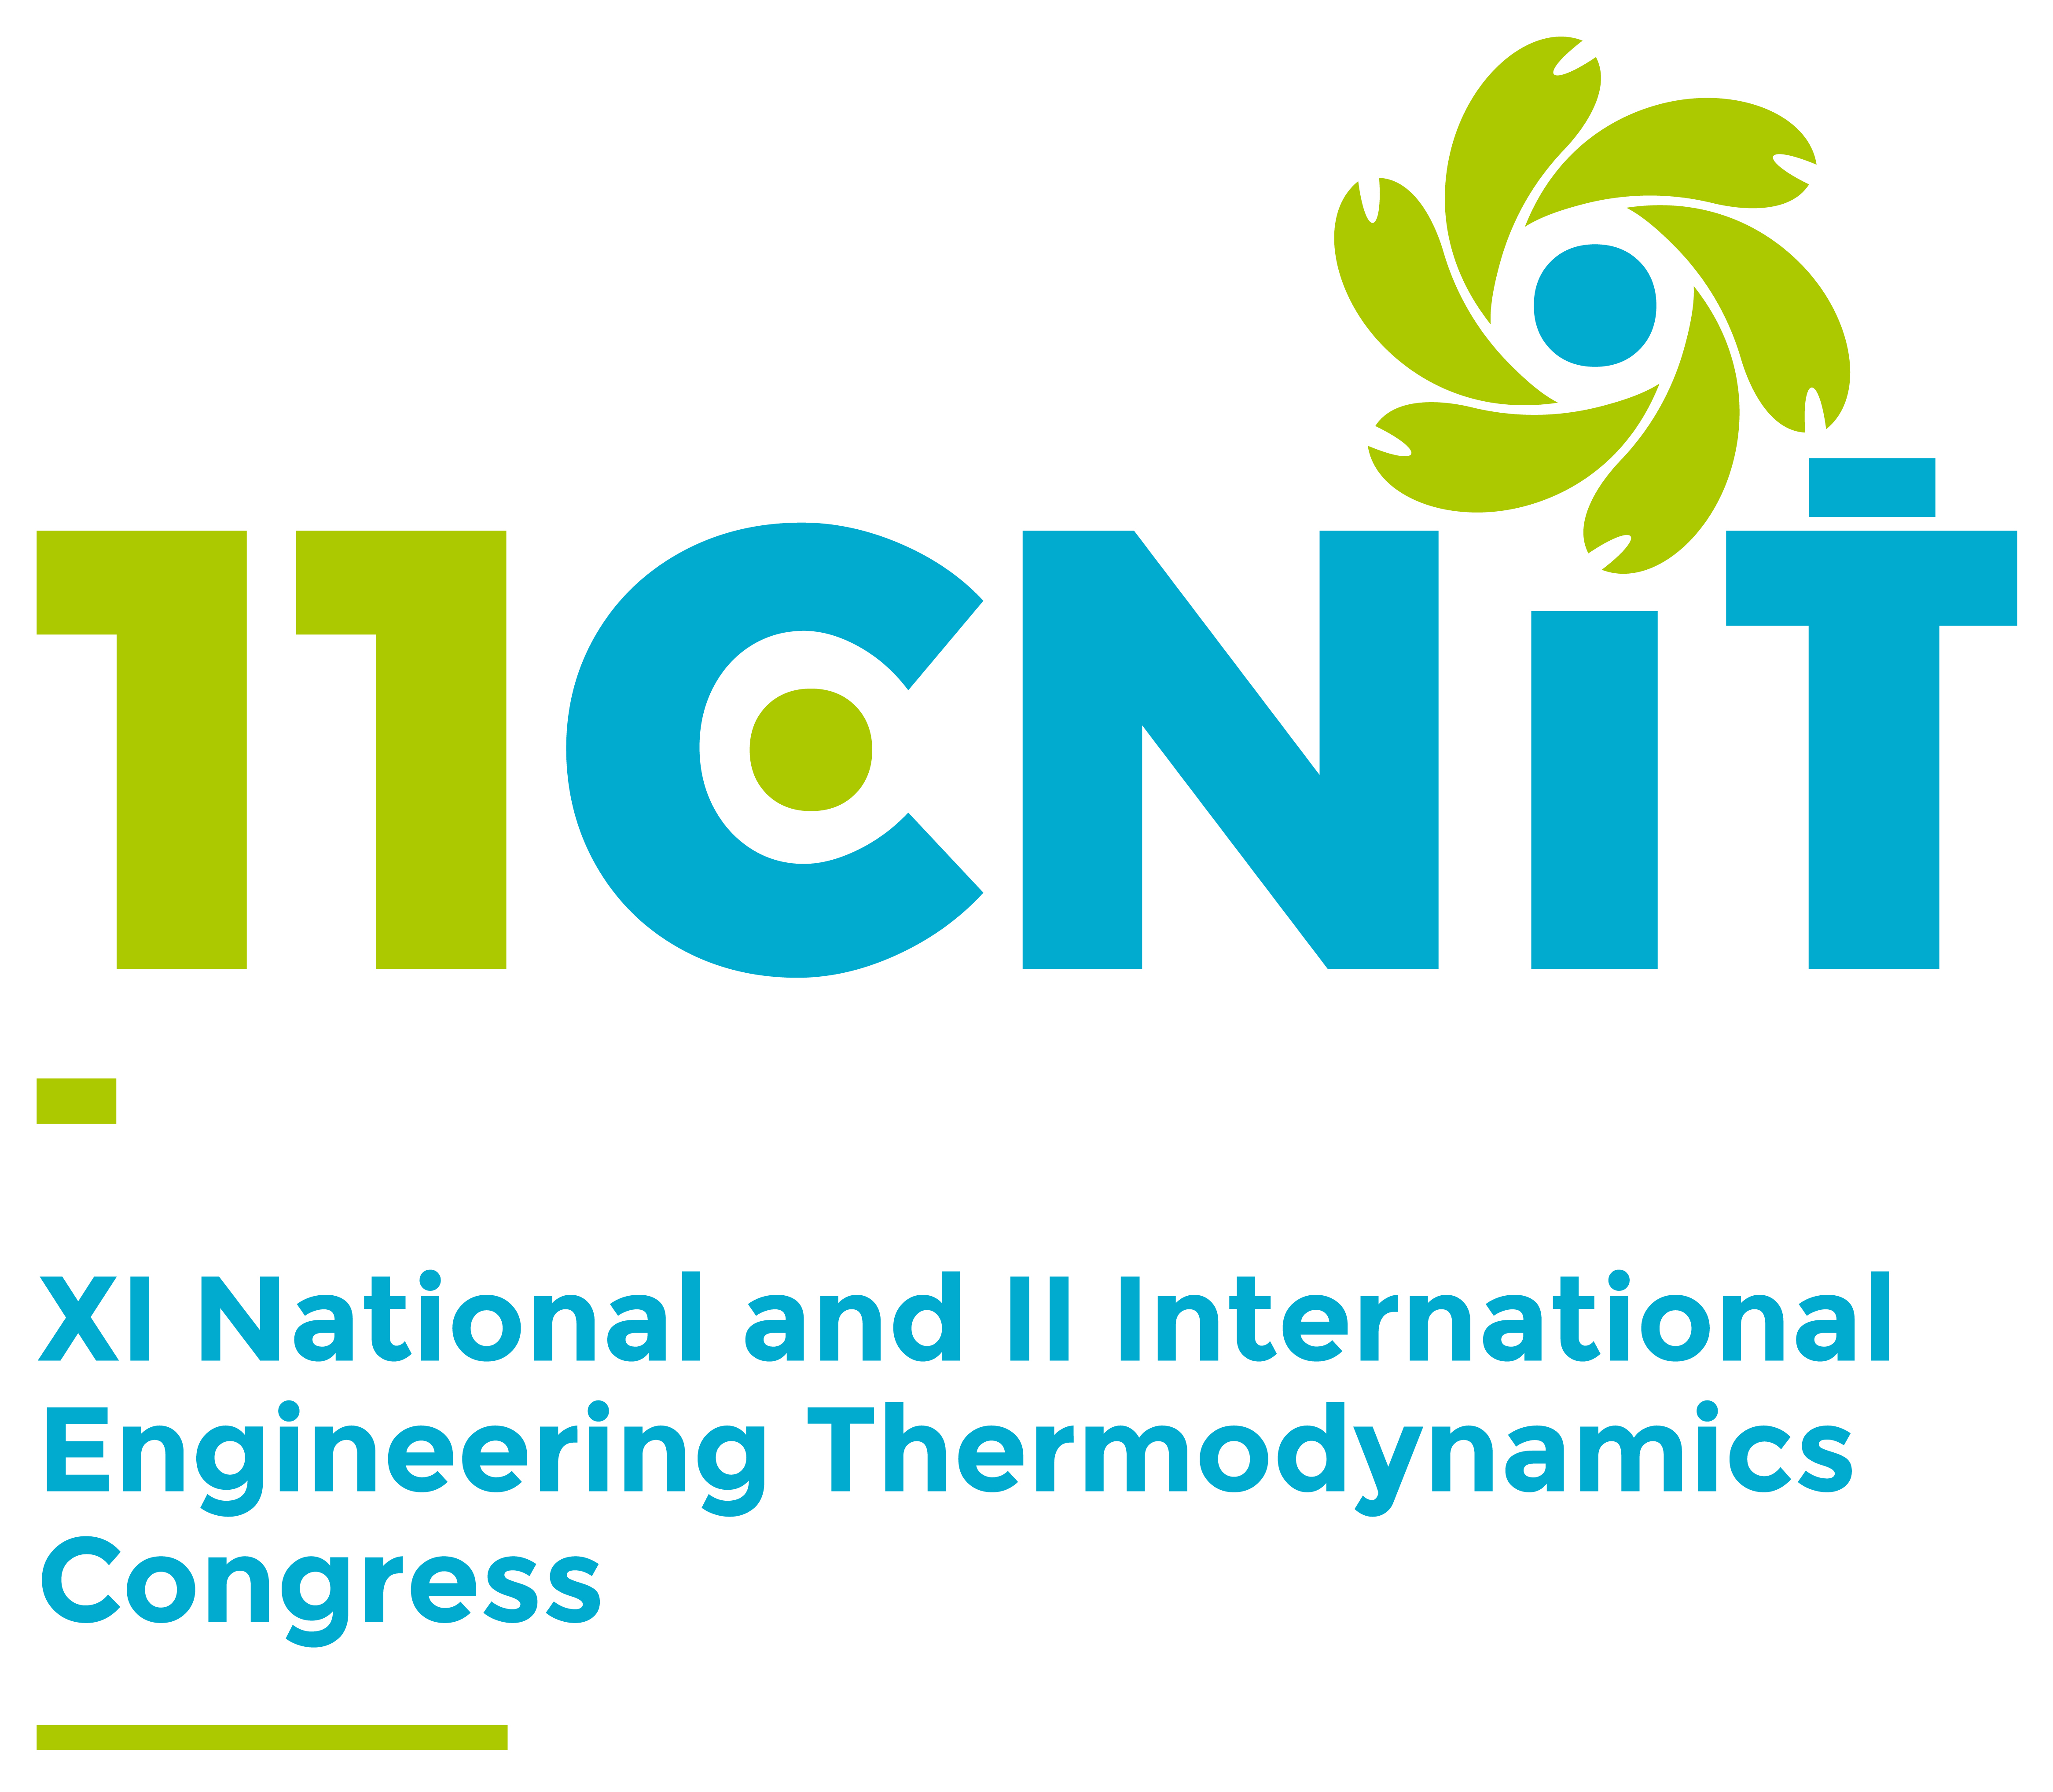 XI National and II International Engineering Thermodynamics Congress: Open the deadline for submitting abstracts